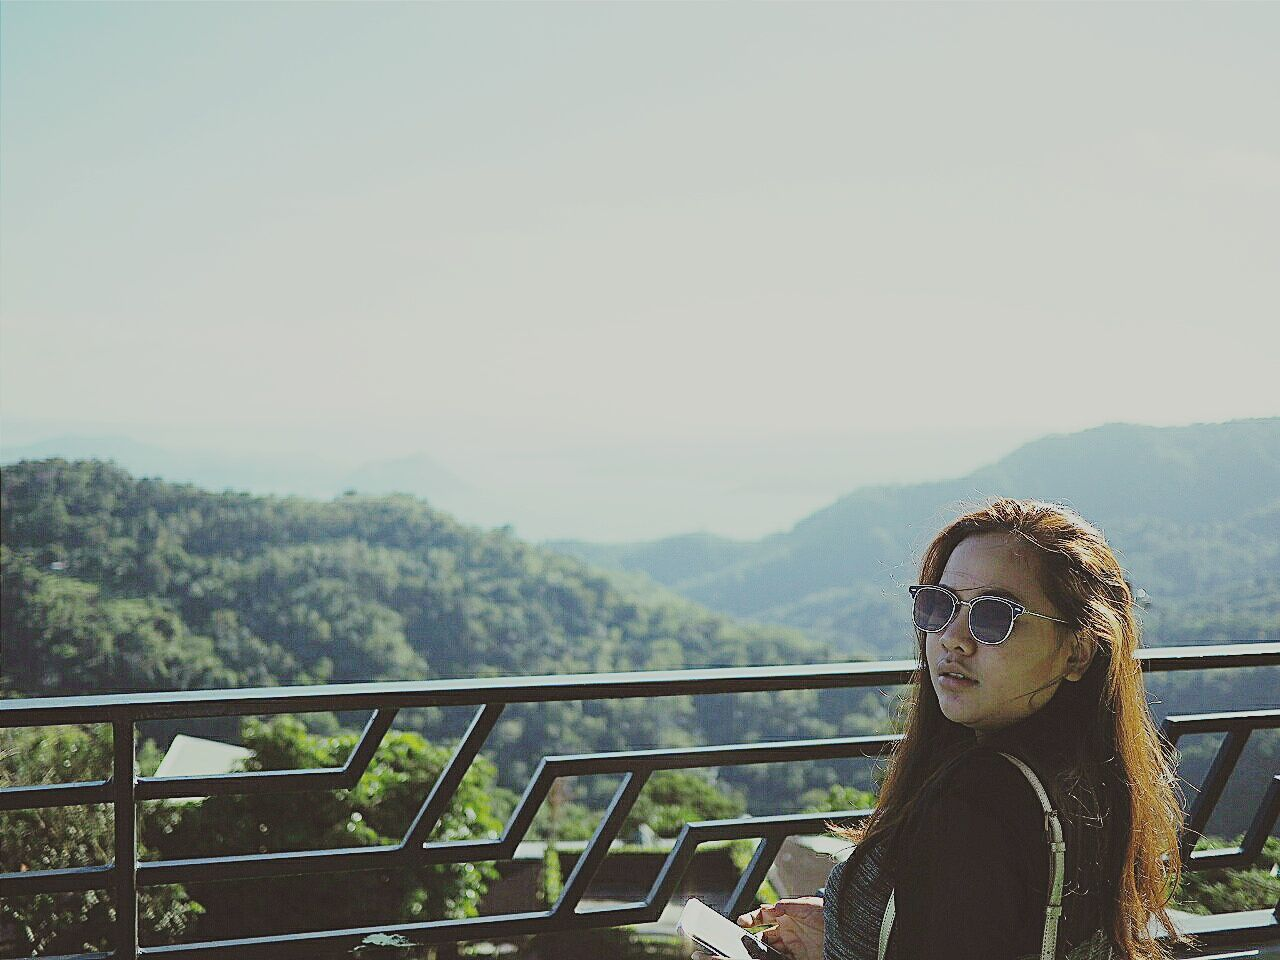 Mountain One Person Tree Only Women Adults Only One Woman Only Headshot Beauty In Nature Rural Scene Day Nature Adult Landscape People Outdoors Young Adult Sky Beautiful People Women TravelPhilippines Travelphotography Smiling Itsmorefuninthephilippines Tagaytay Philippines... Philippine Sceneries